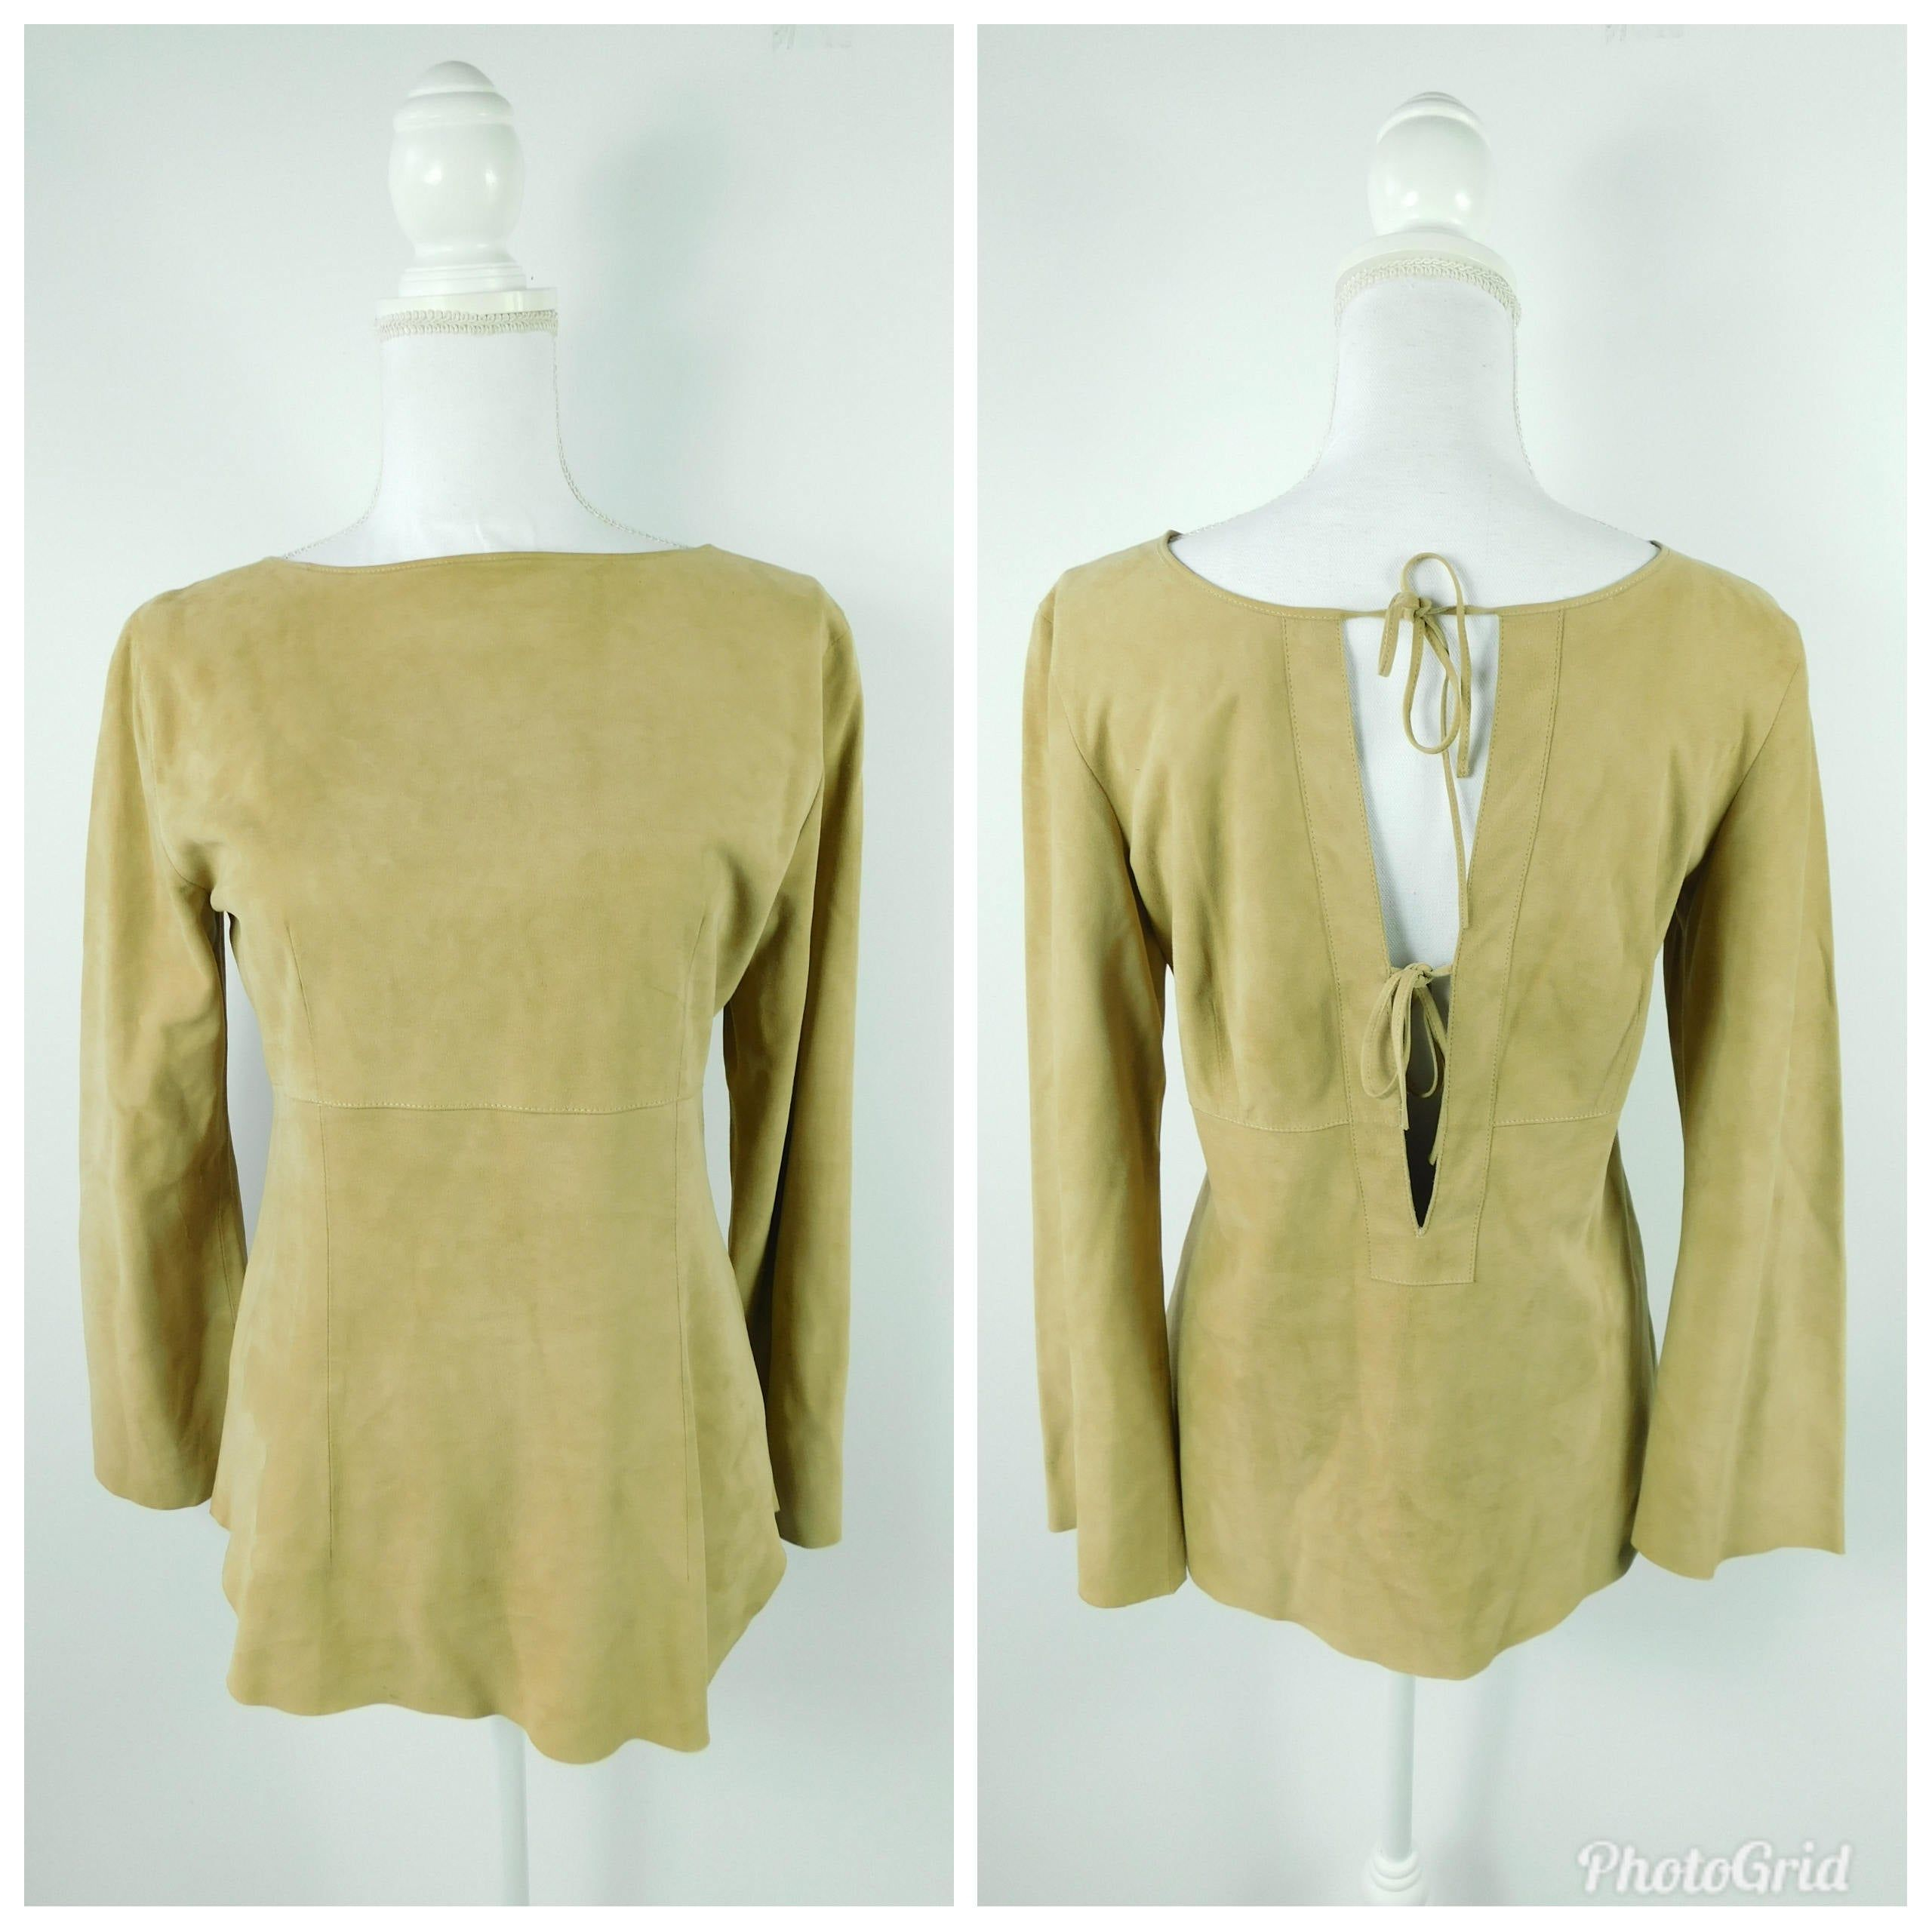 Photo of Vintage 70s 1970s Tan Brown Leather Suede Open Back Ties Boatneck Long Sleeve Shirt Top Blouse Sz La